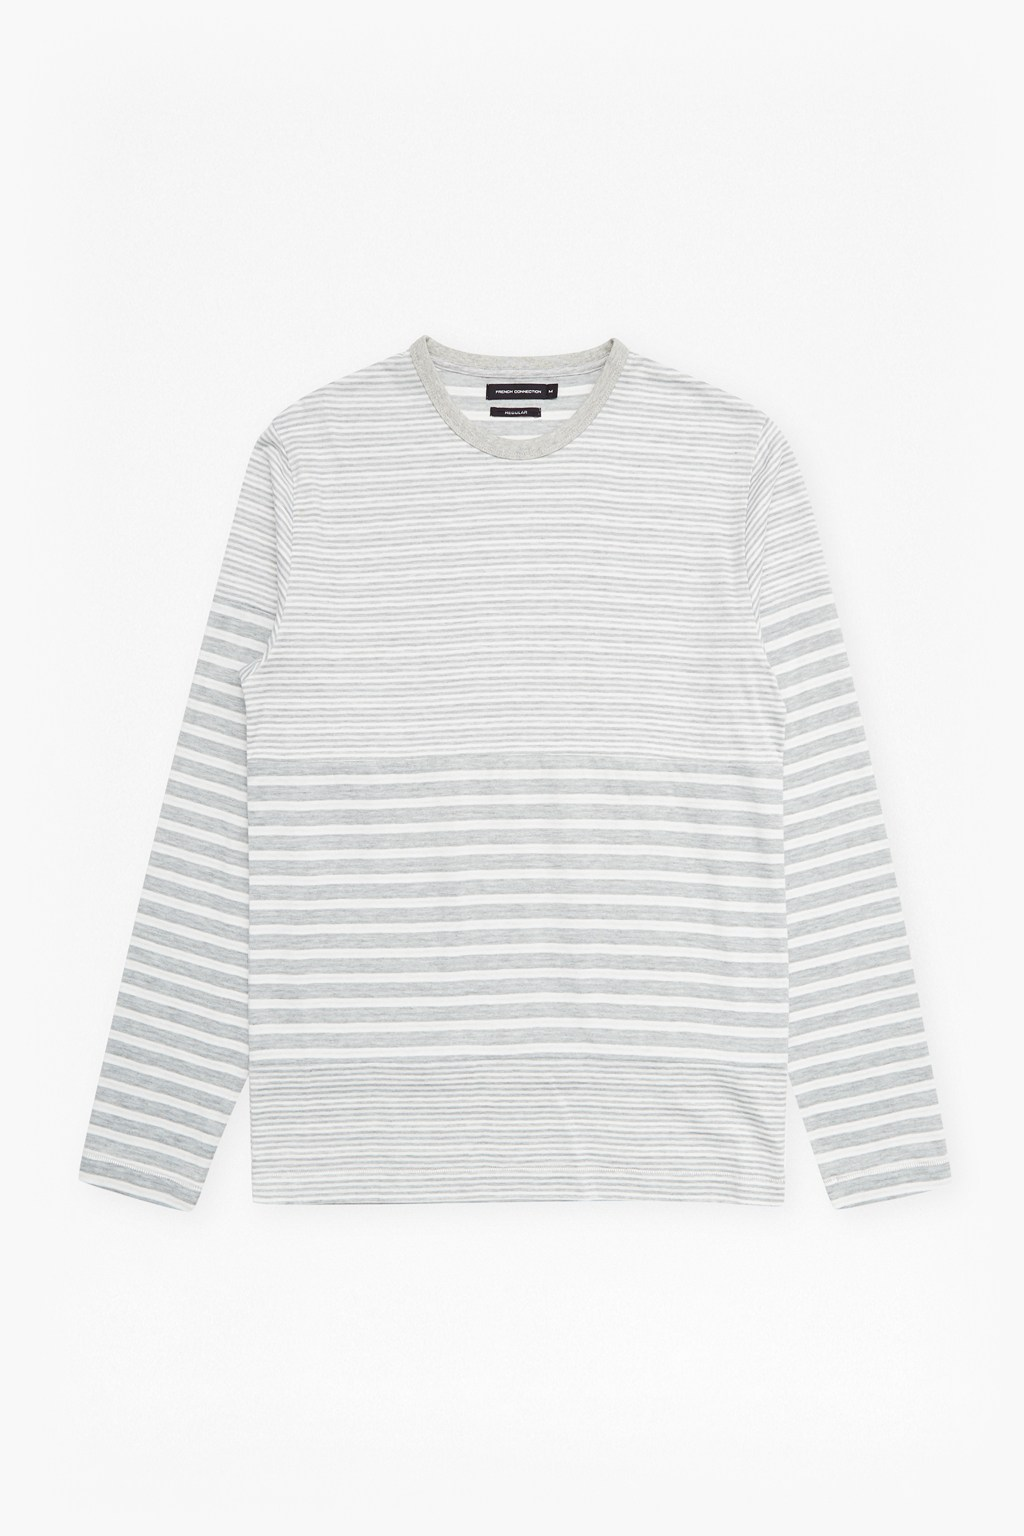 double face striped long sleeved top